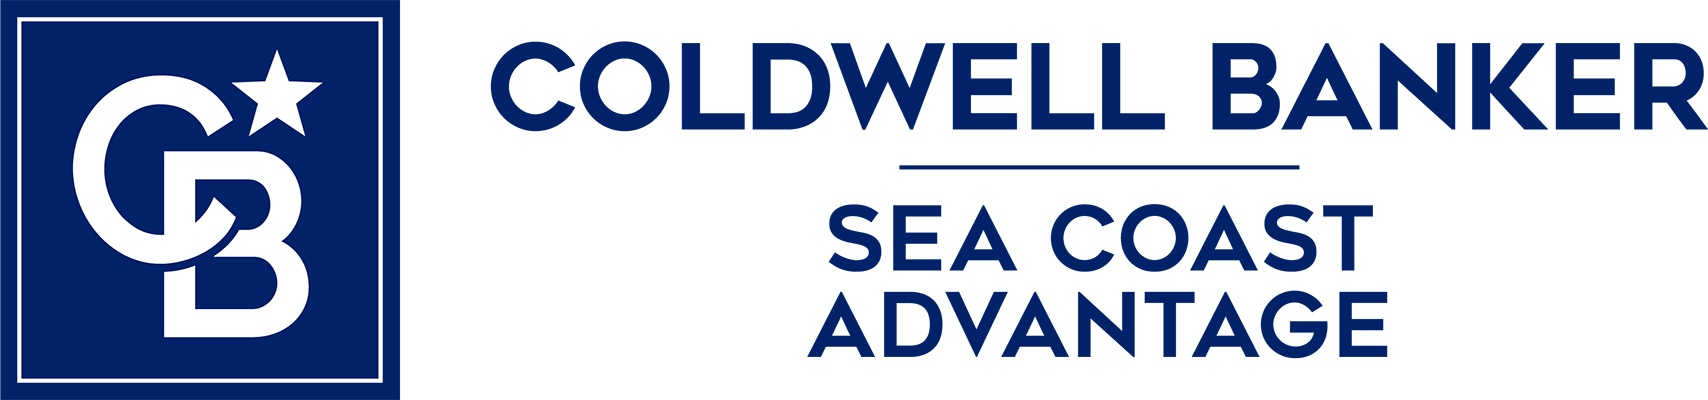 MaDonna McMahon - Coldwell Banker Sea Coast Advantage Realty